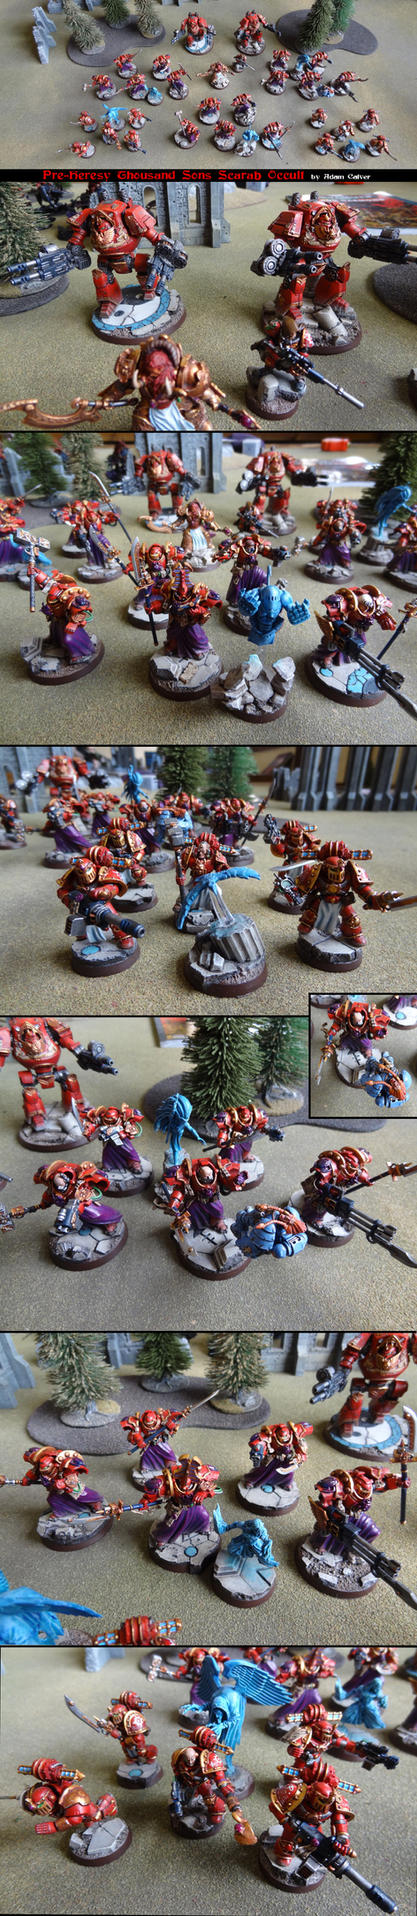 Pre-Heresy Thousand Sons Scarab Occult Army by Proiteus